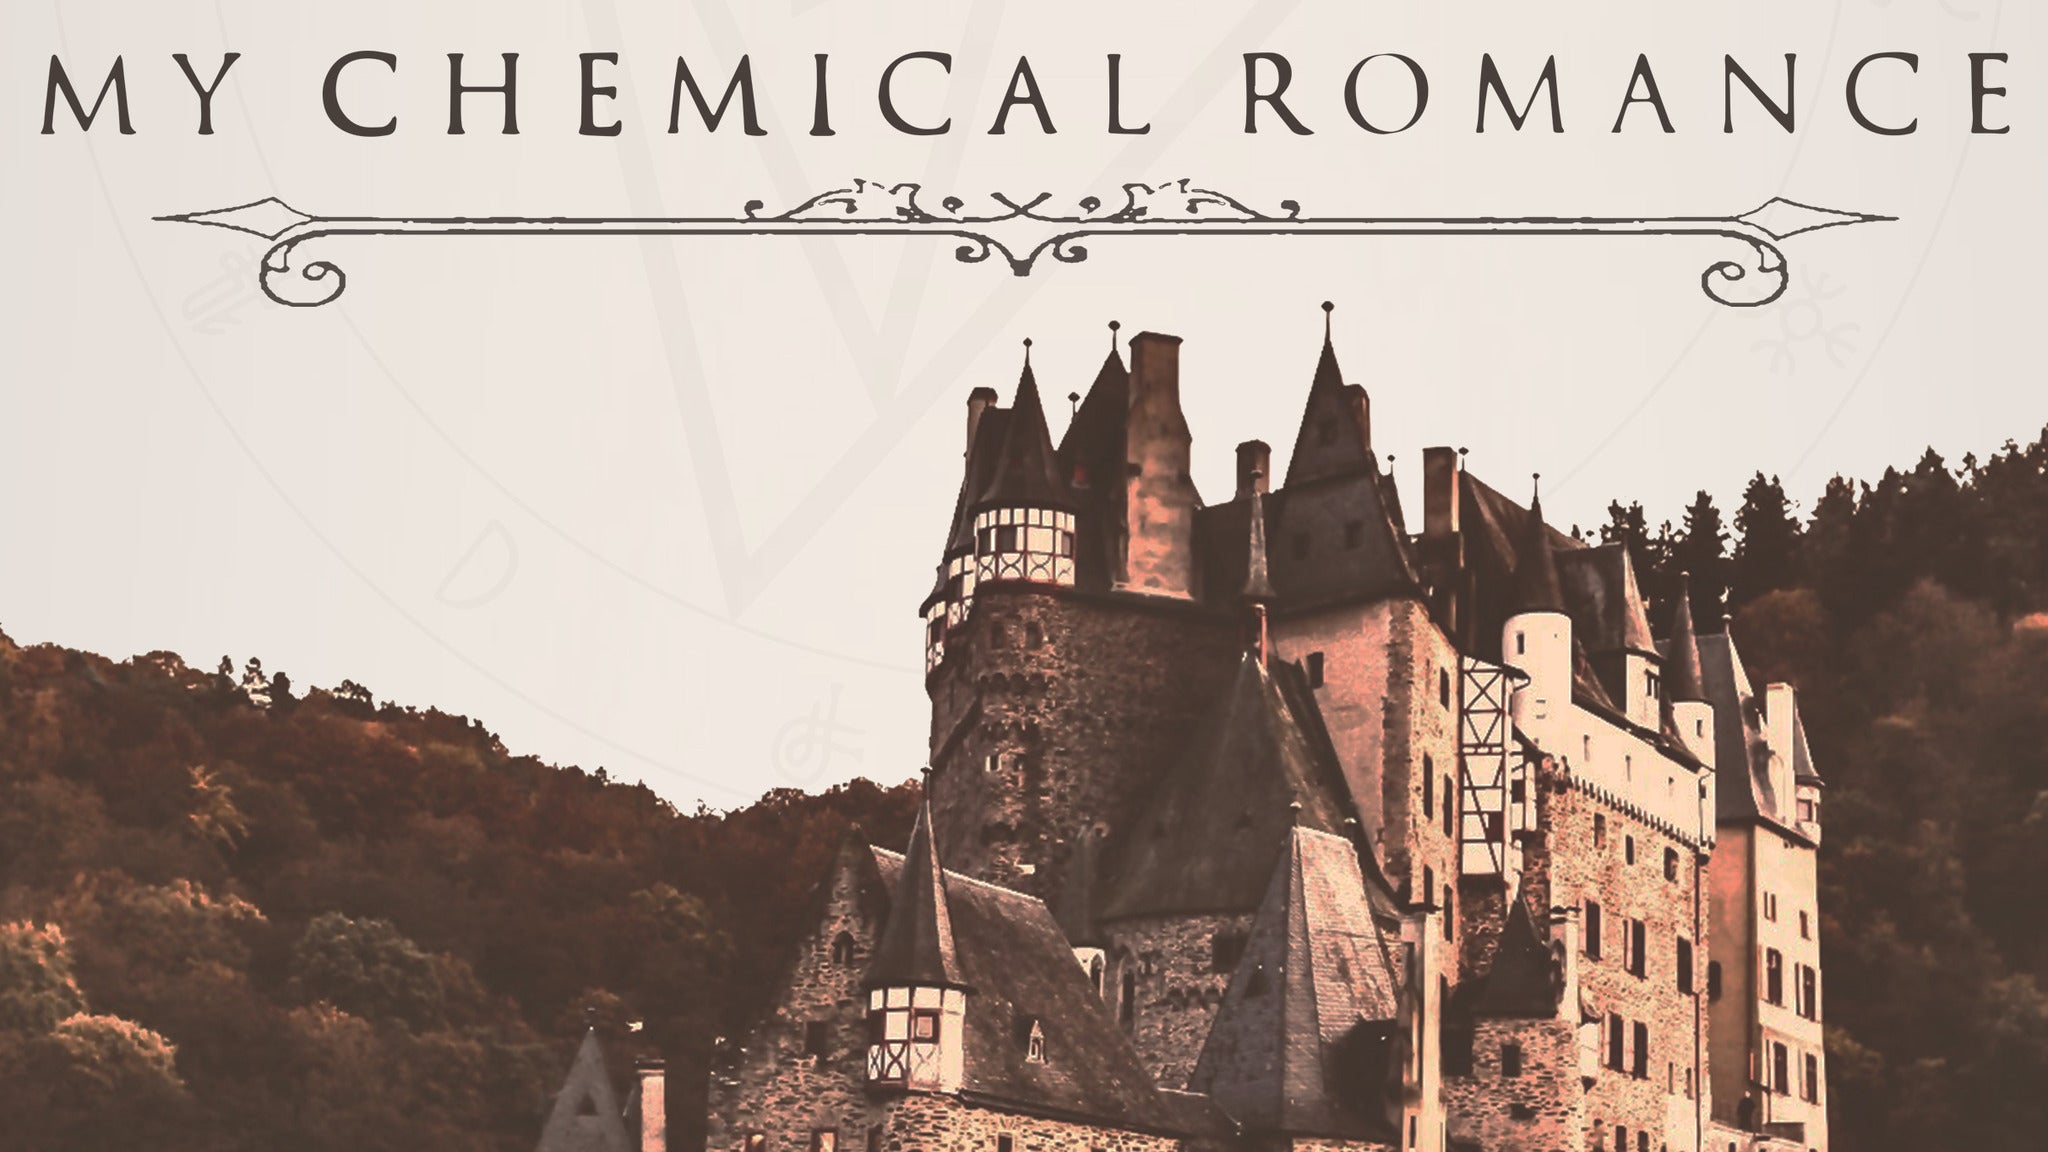 My Chemical Romance North American Tour Dates - Rescheduled for 2021 Calendar